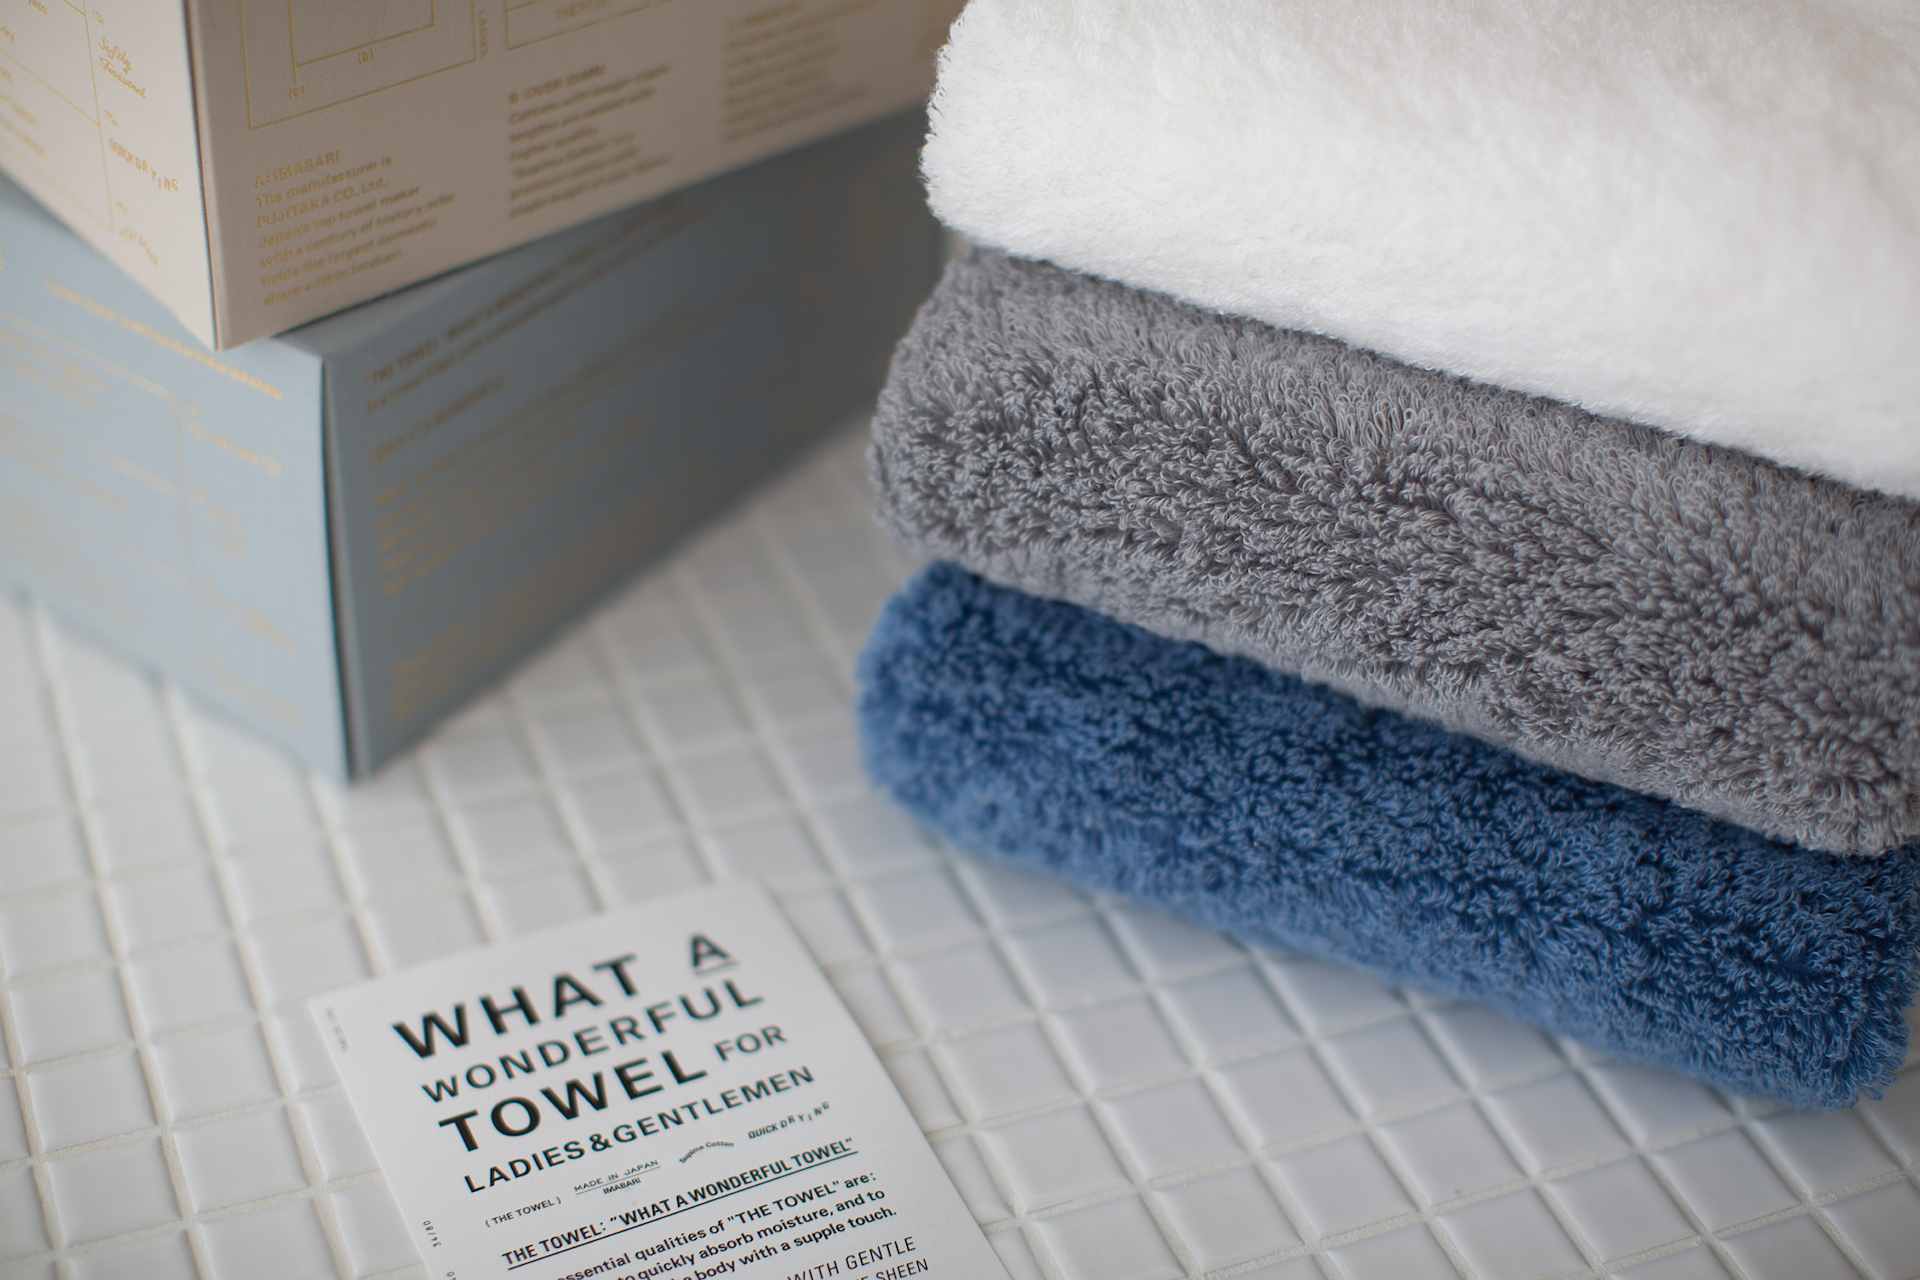 THE TOWEL for LADIES / THE TOWEL for GENTLEMEN